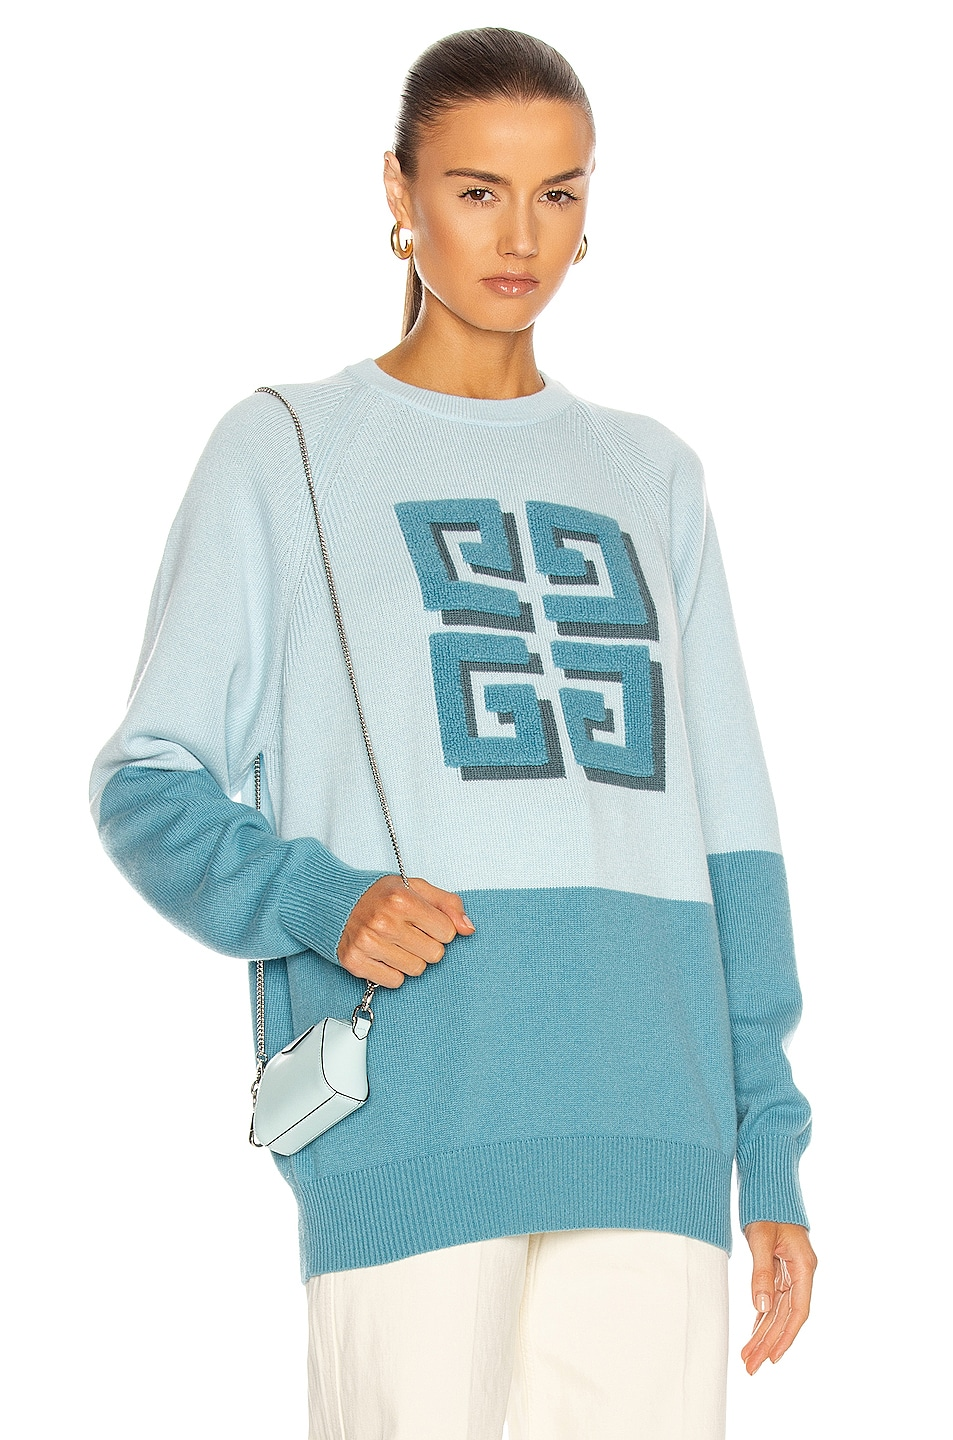 Image 1 of Givenchy Bicolor Crew Neck 4G Sweater in Sky Blue